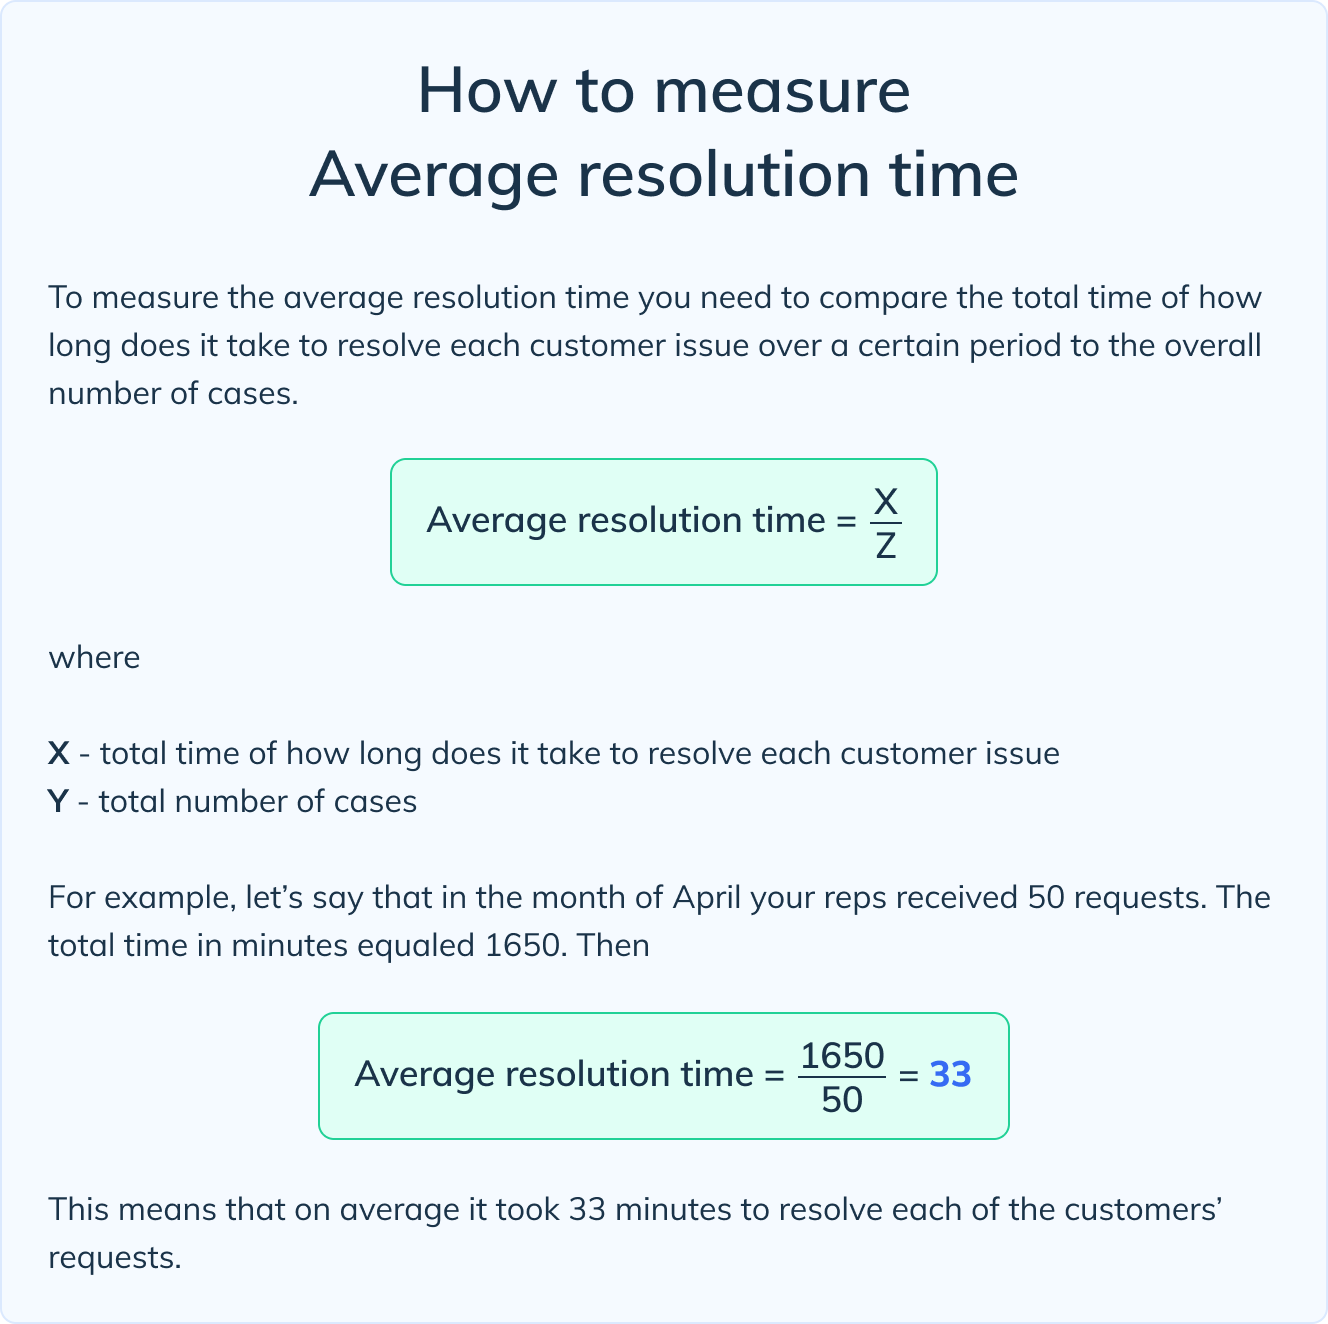 How to measure Average resolution time